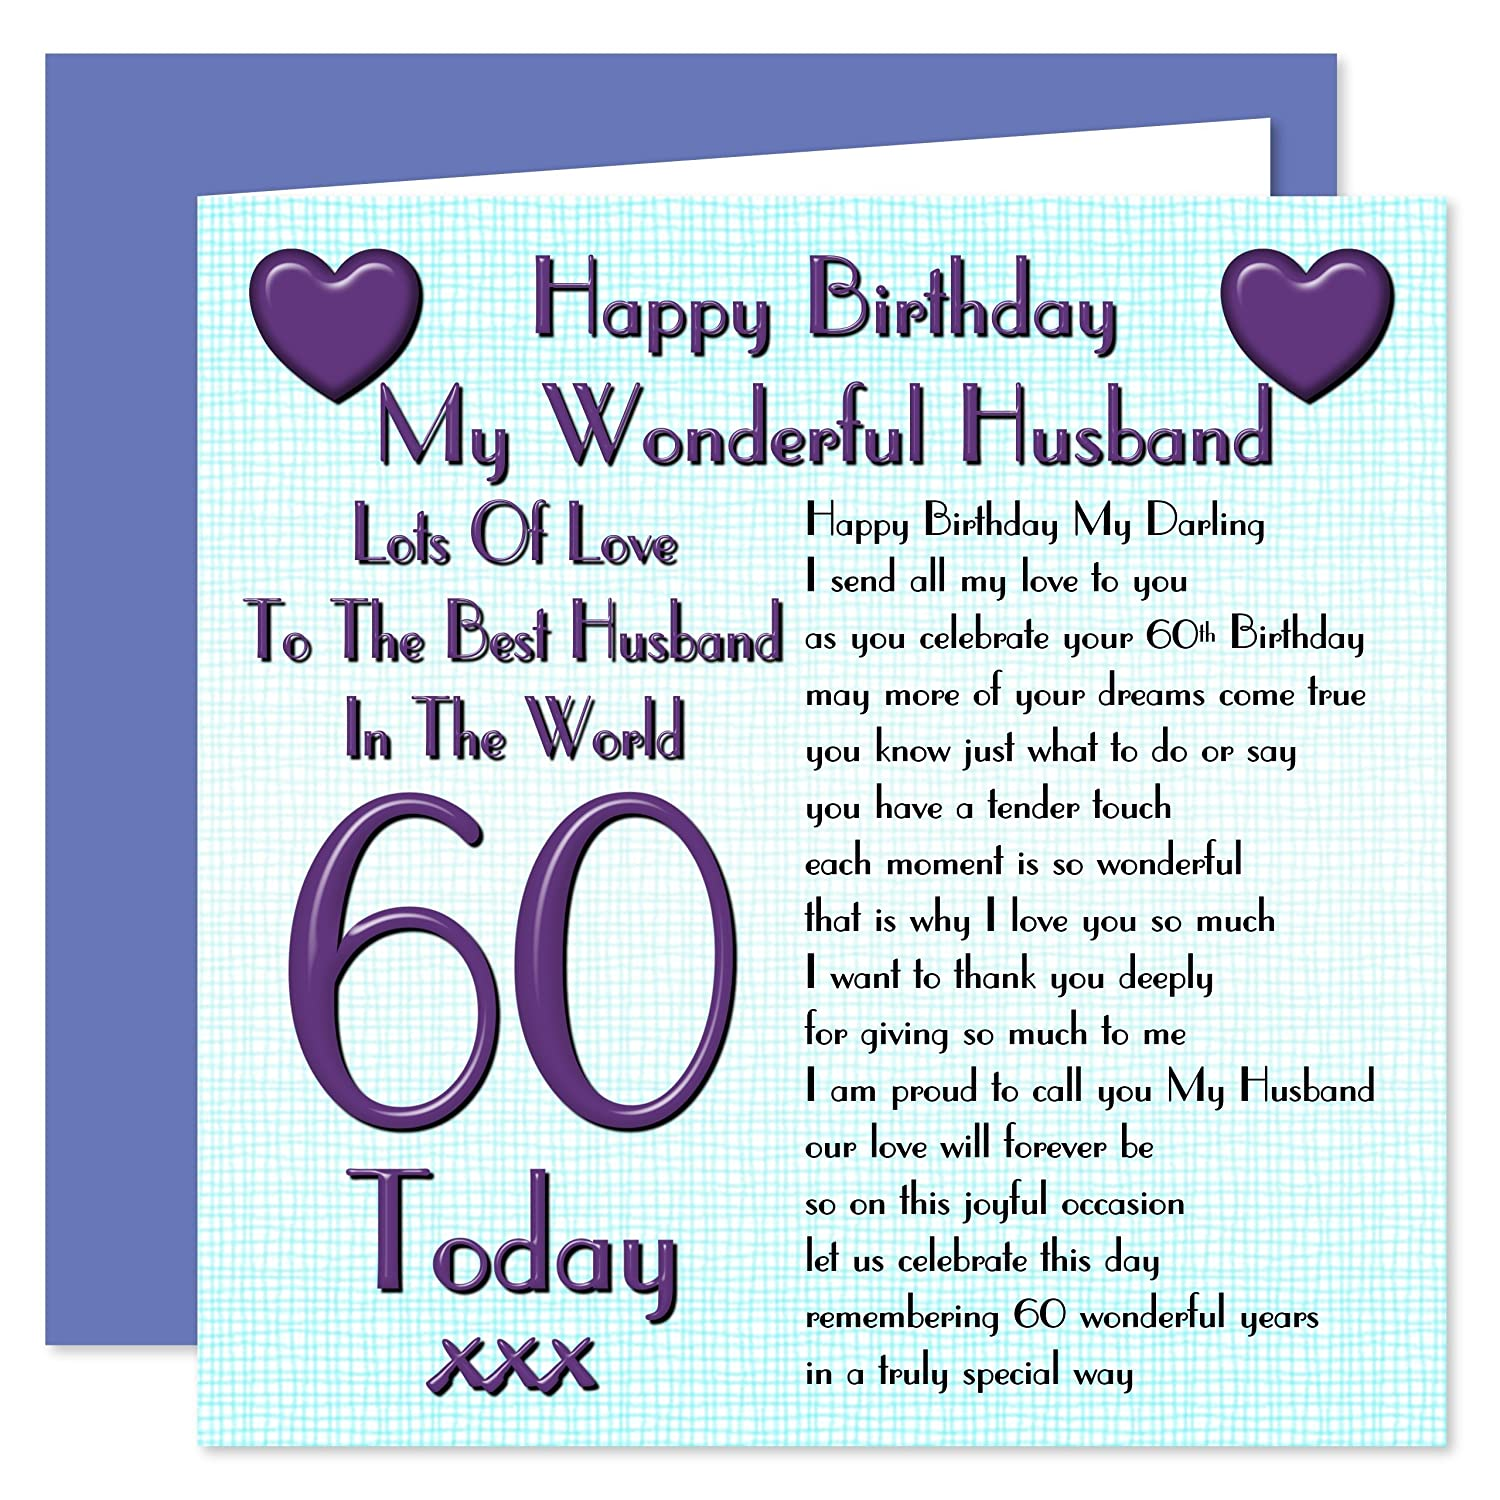 Husband 60th Happy Birthday Card Lots Of Love To The Best – Birthday Cards for Husband with Love